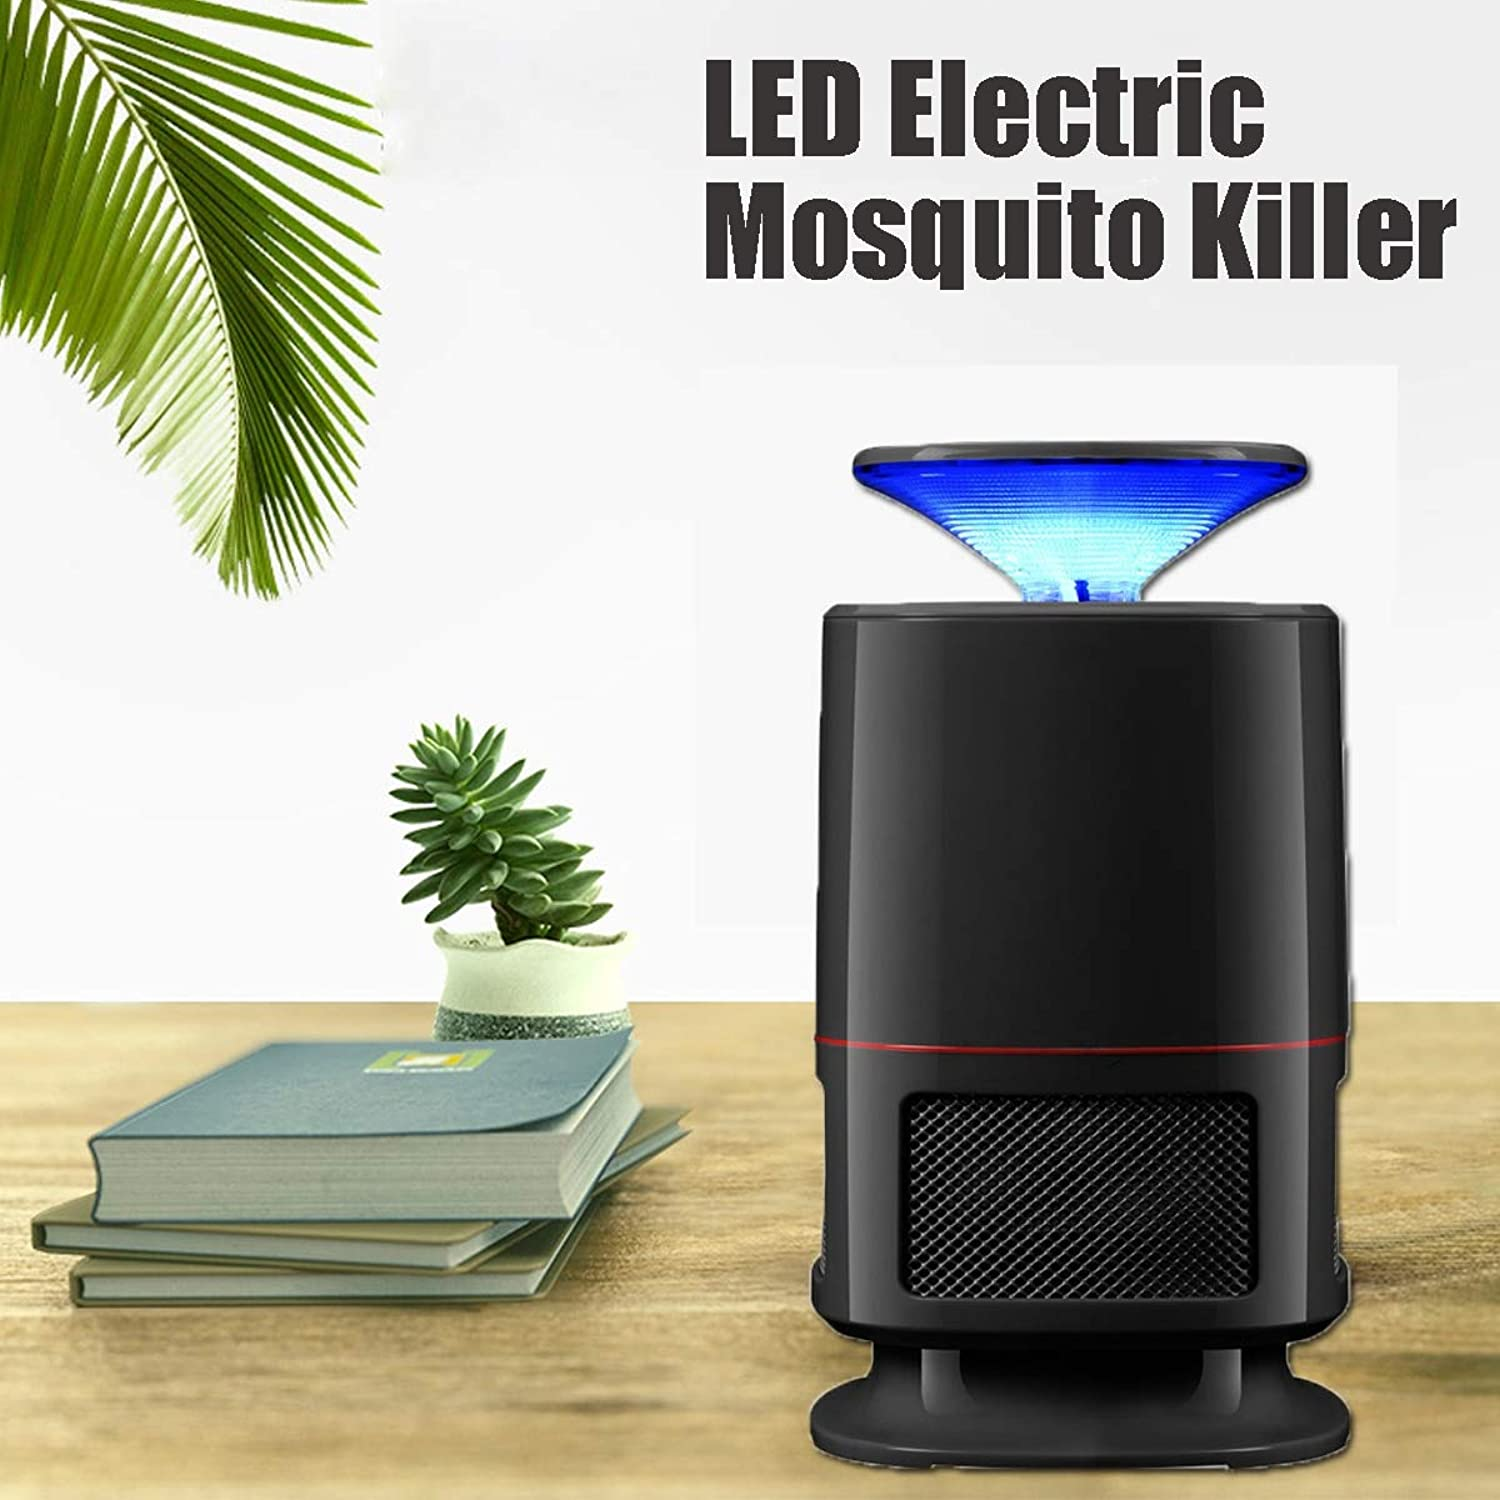 Optical Media LED Electric Mosquito Killer USB Fly Bug Zapper Lamp Light Bulb Traps Repellents Home Garden Pest Control Tools